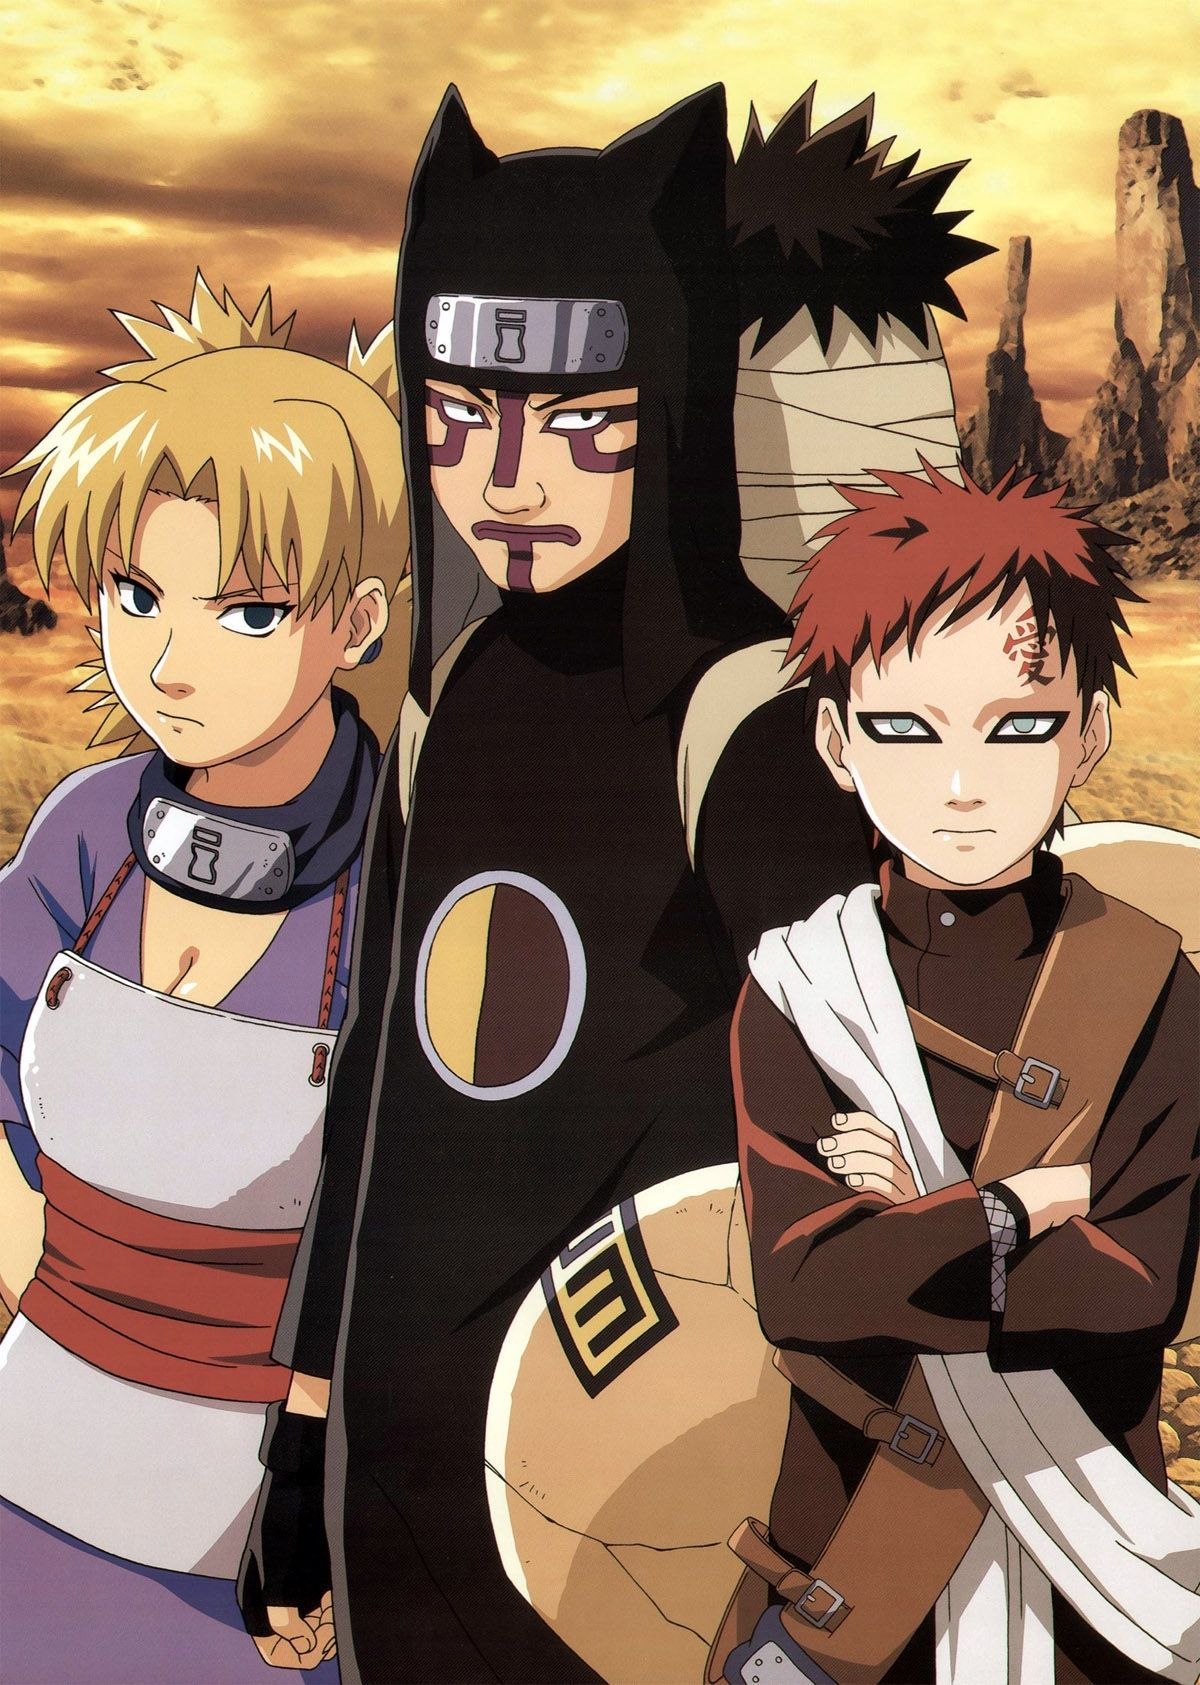 The Sand Siblings is the collective name for the children ... Gaara And Naruto Kids